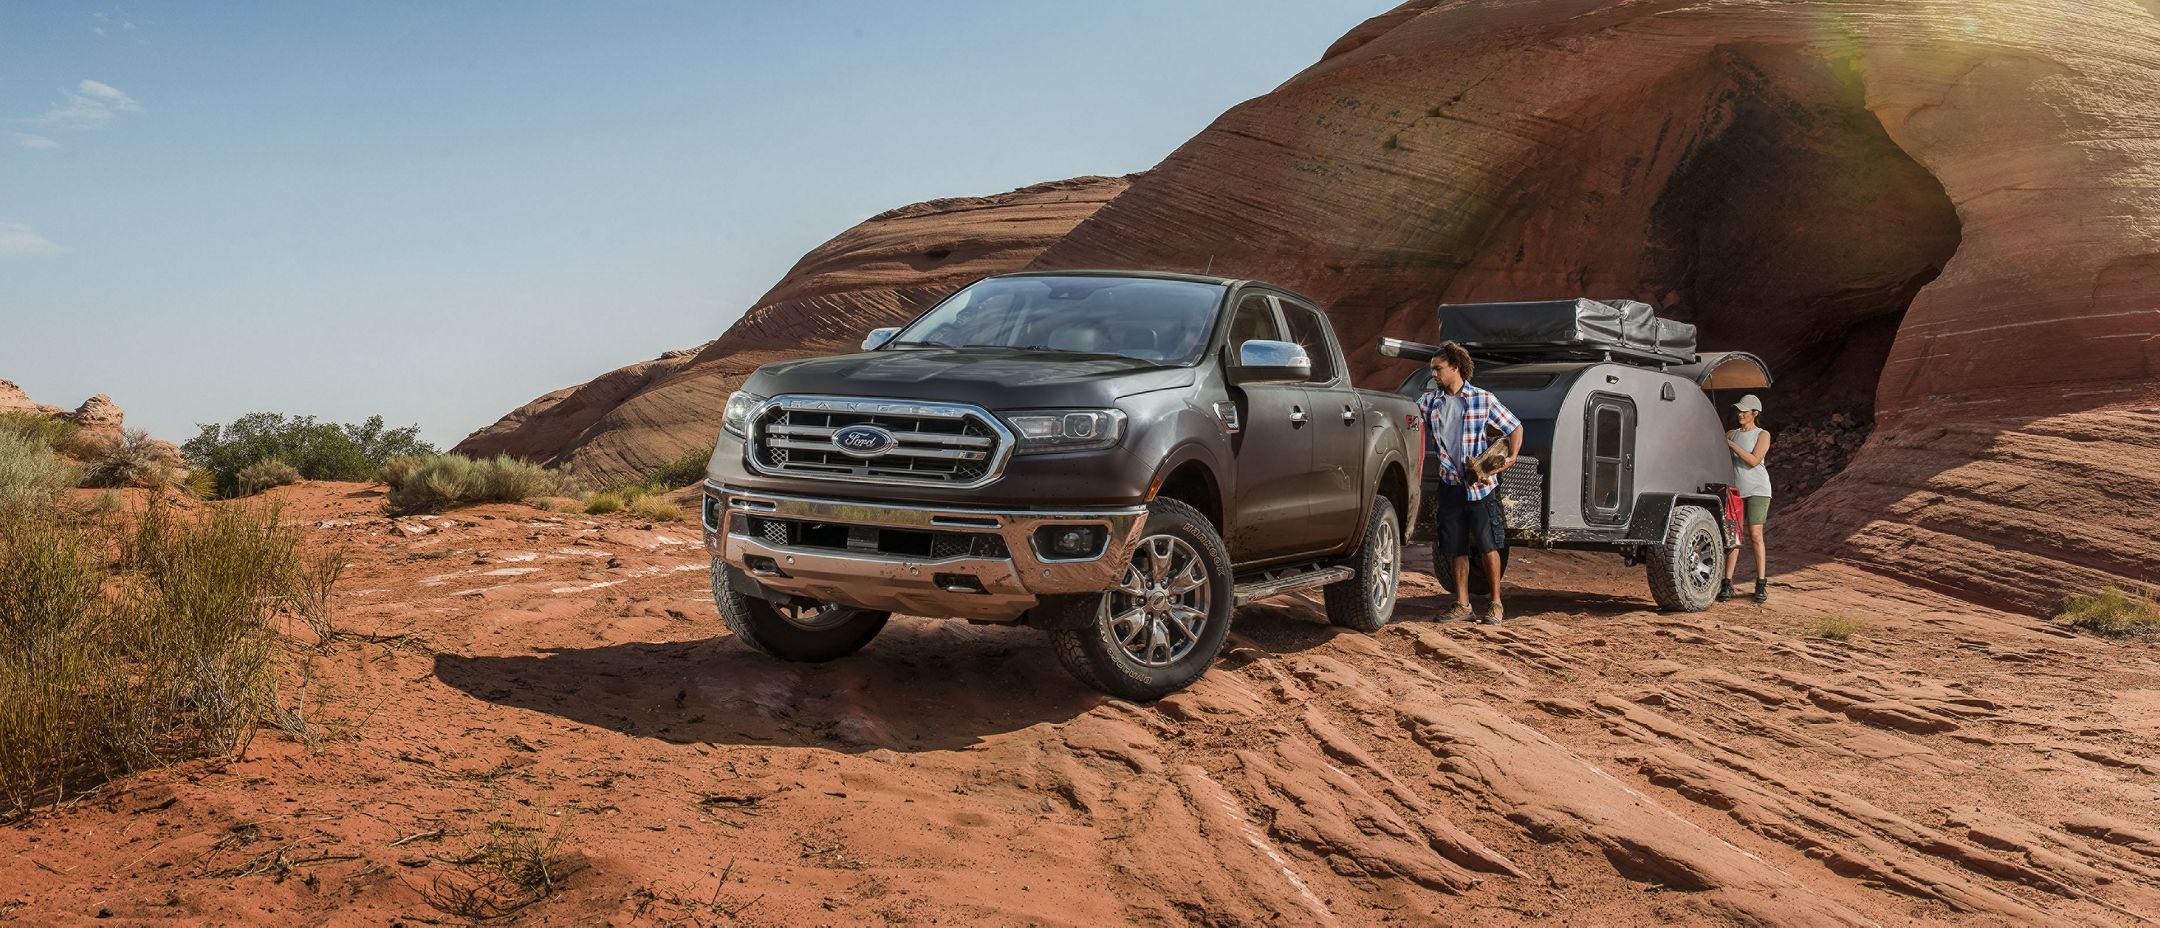 2019 Ford Ranger Chrome Appearance Package